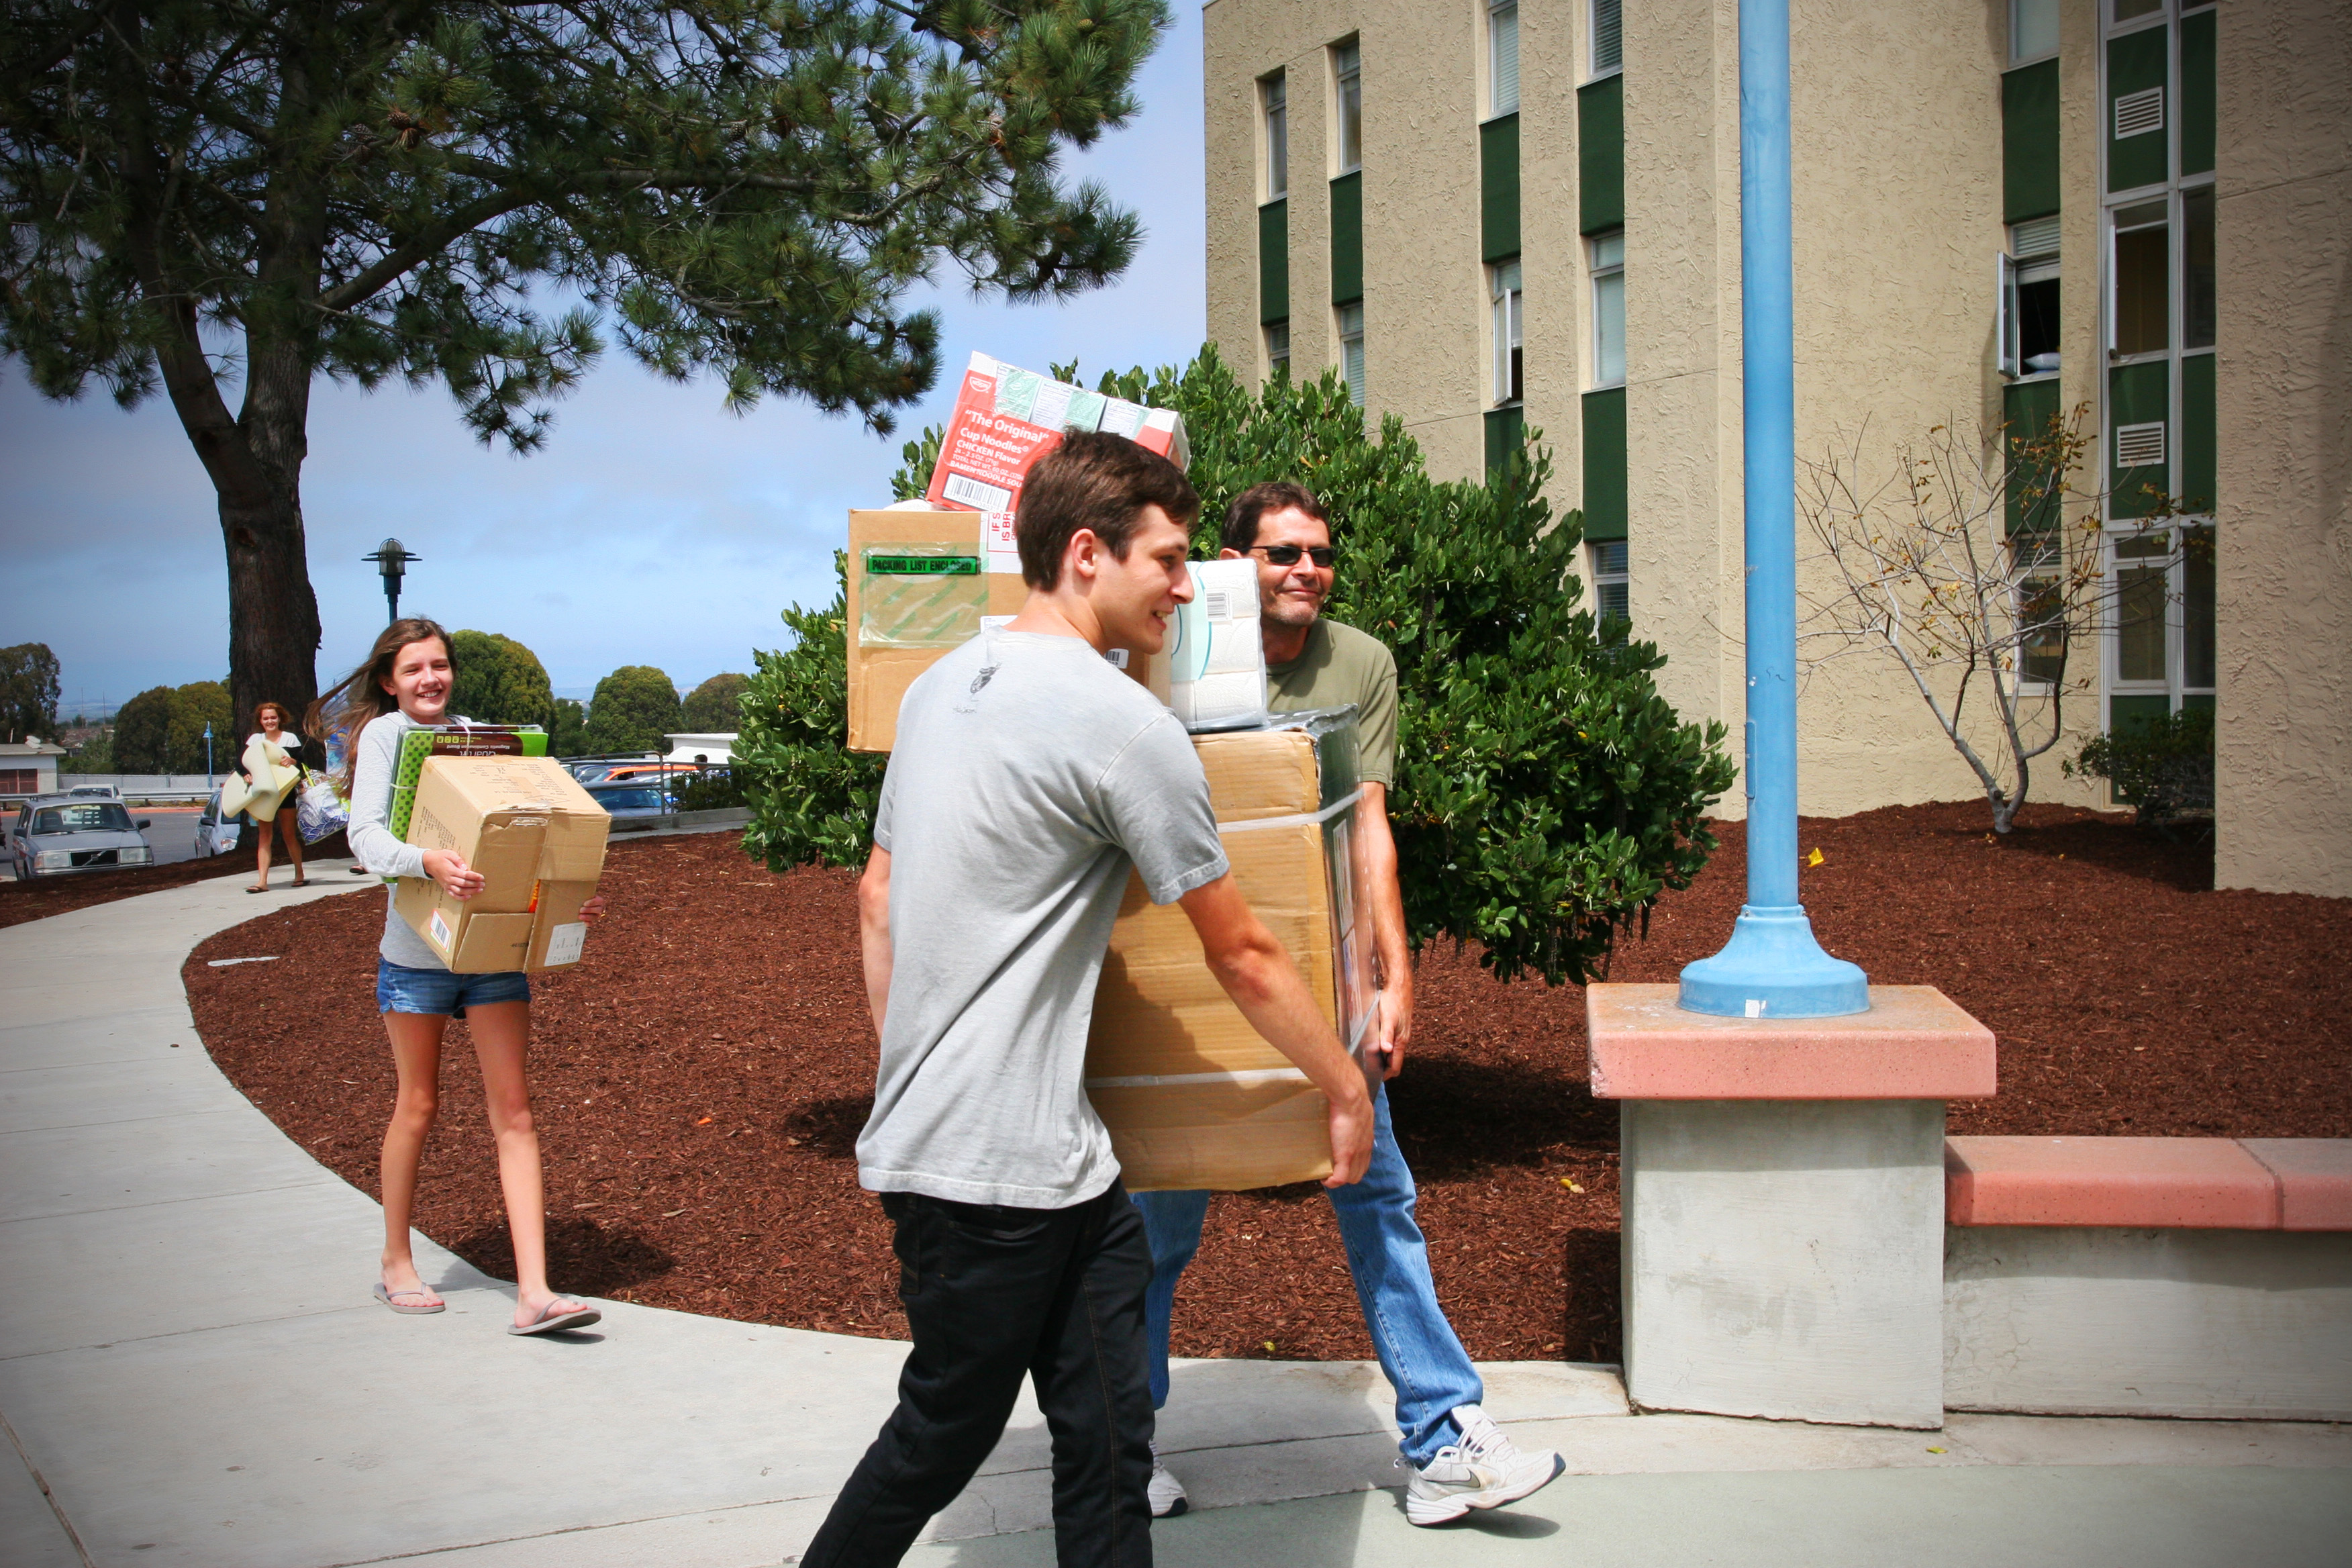 Students Moving In carrying boxes